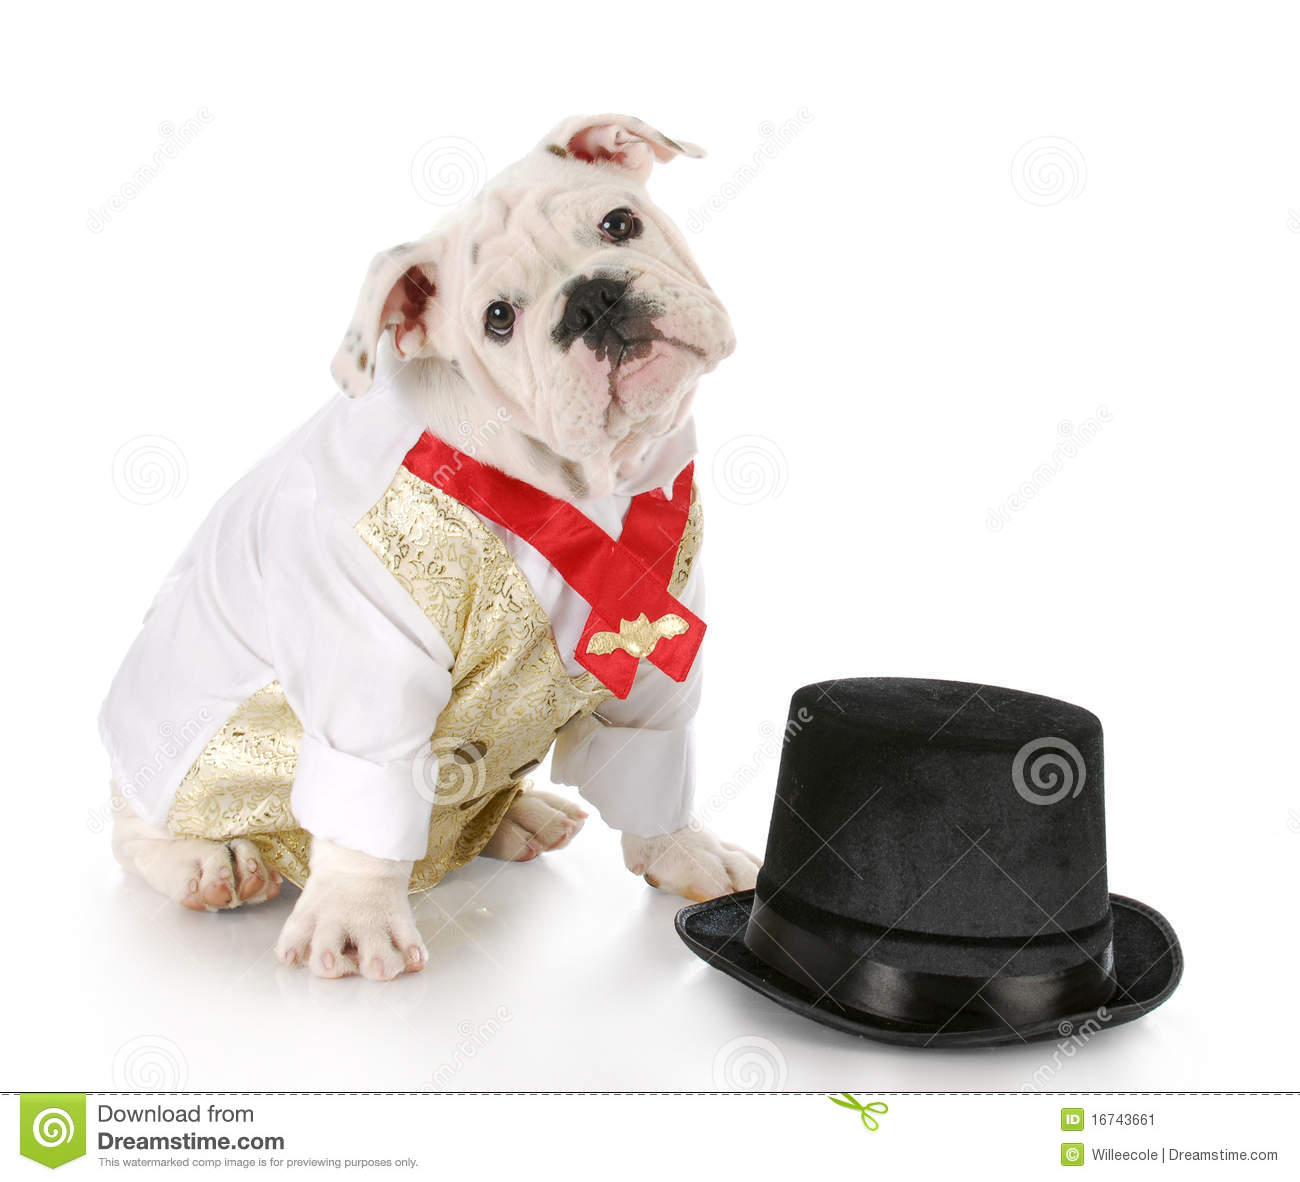 33b3a8b26b4 Bulldog puppy wearing formal shirt sitting beside black top hat with  reflection on white background